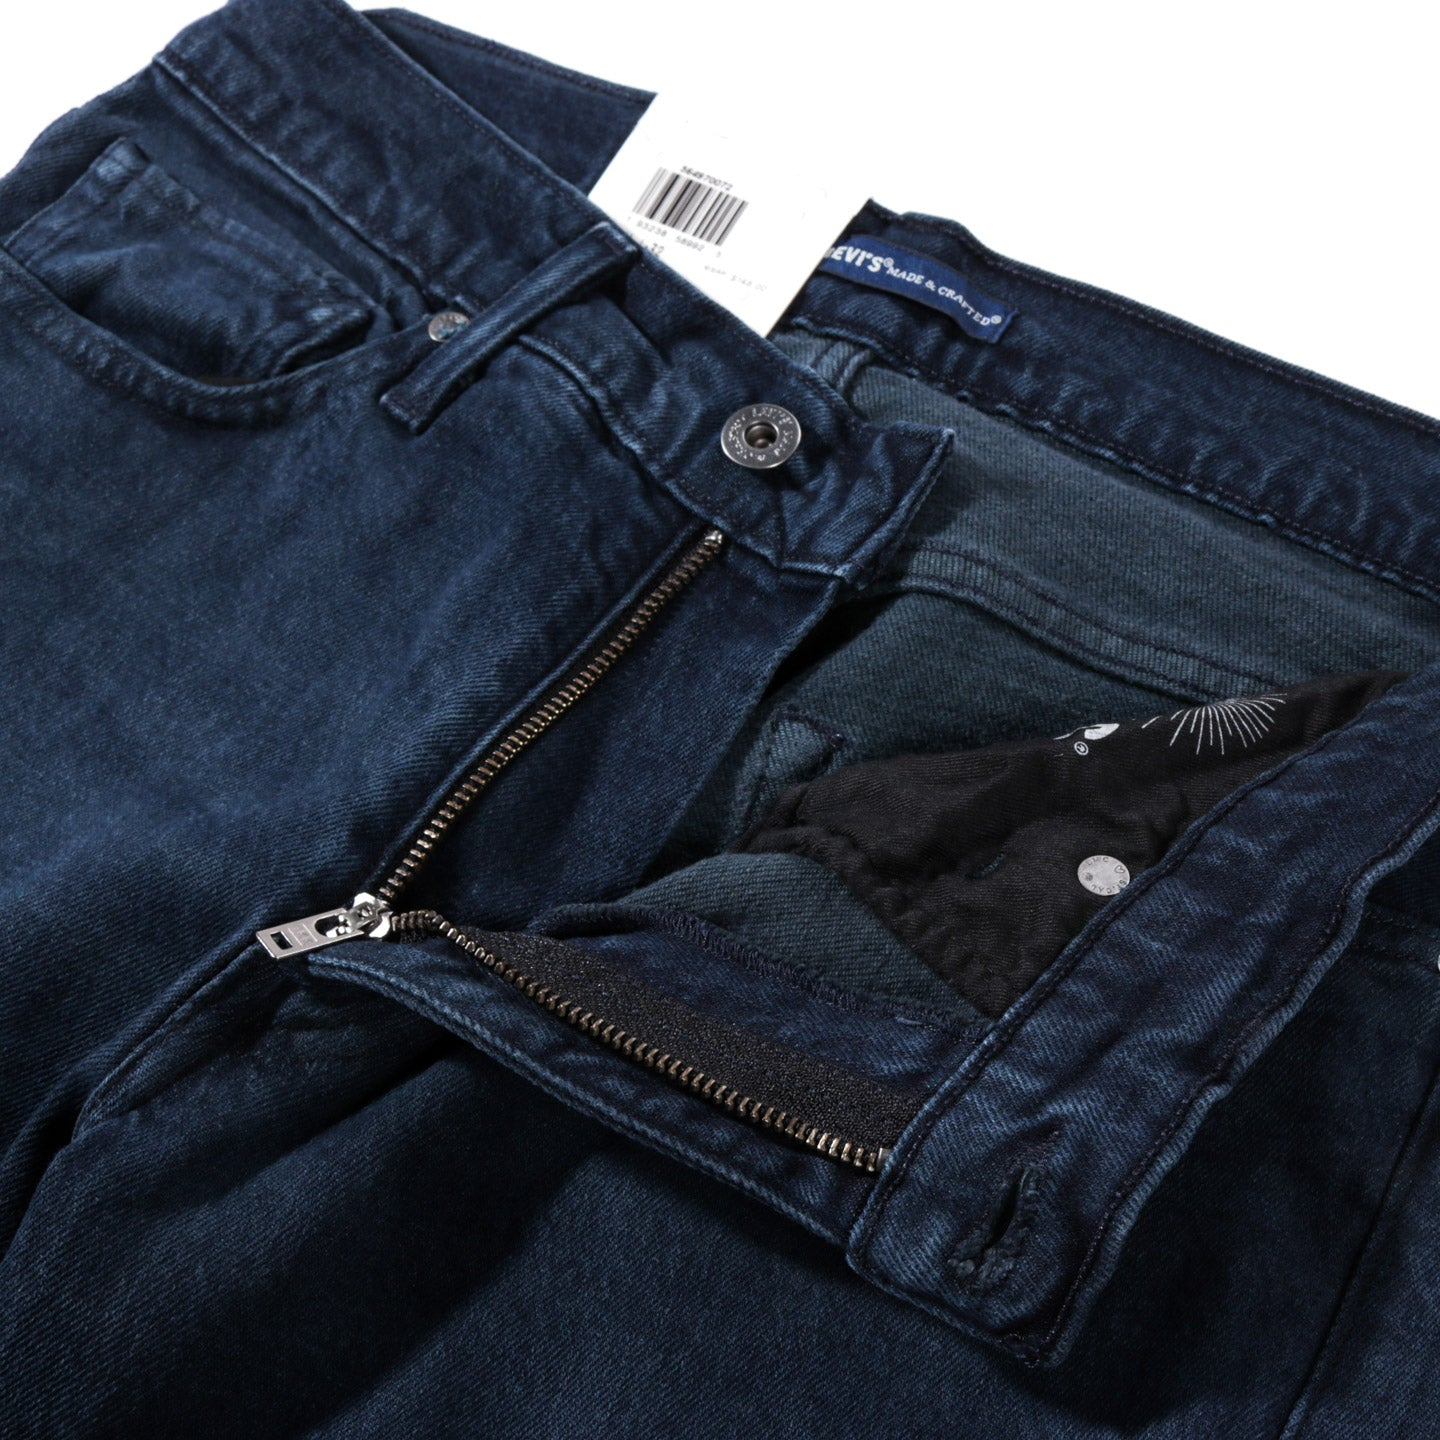 LEVI'S MADE & CRAFTED 511 CARTER